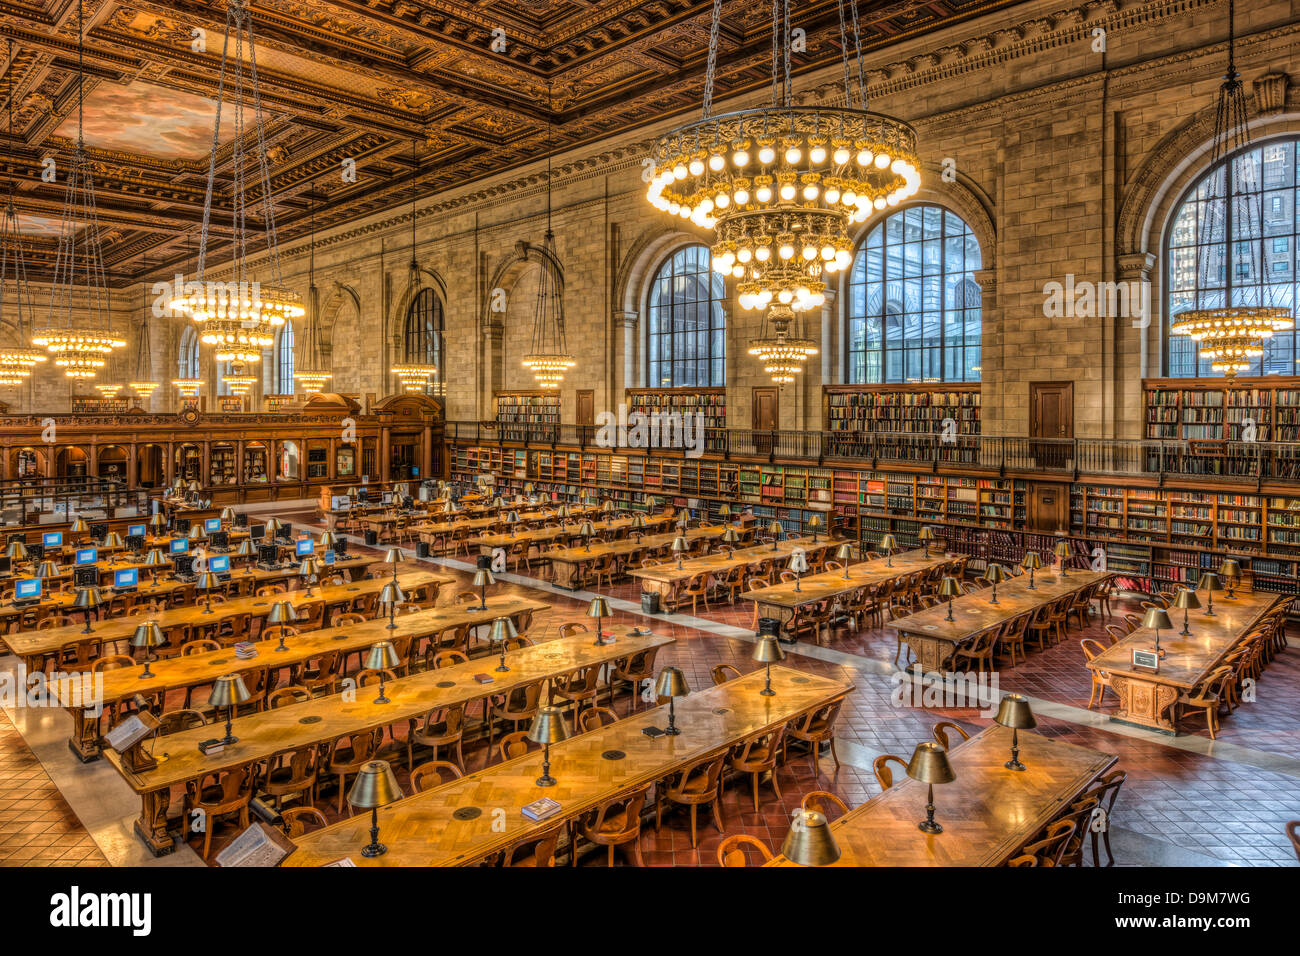 An elevated view of the Rose Main Reading Room in the main branch of the New York Public Library in New York City. - Stock Image